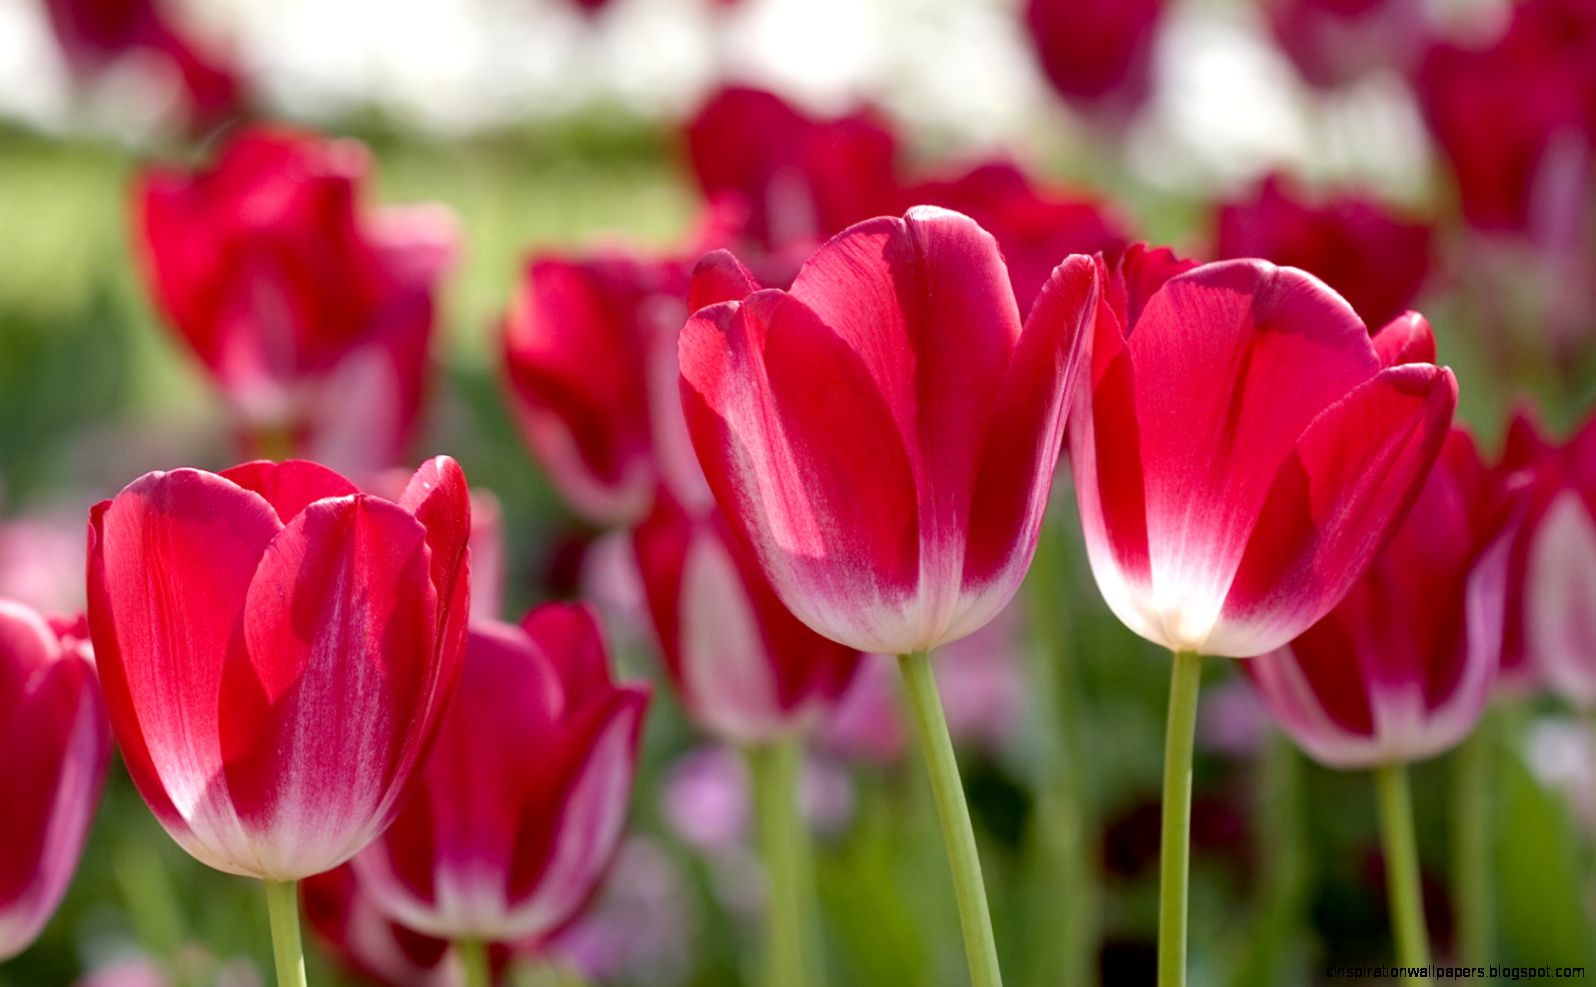 Flowers Wallpaper Red Tulips Inspiration Wallpapers